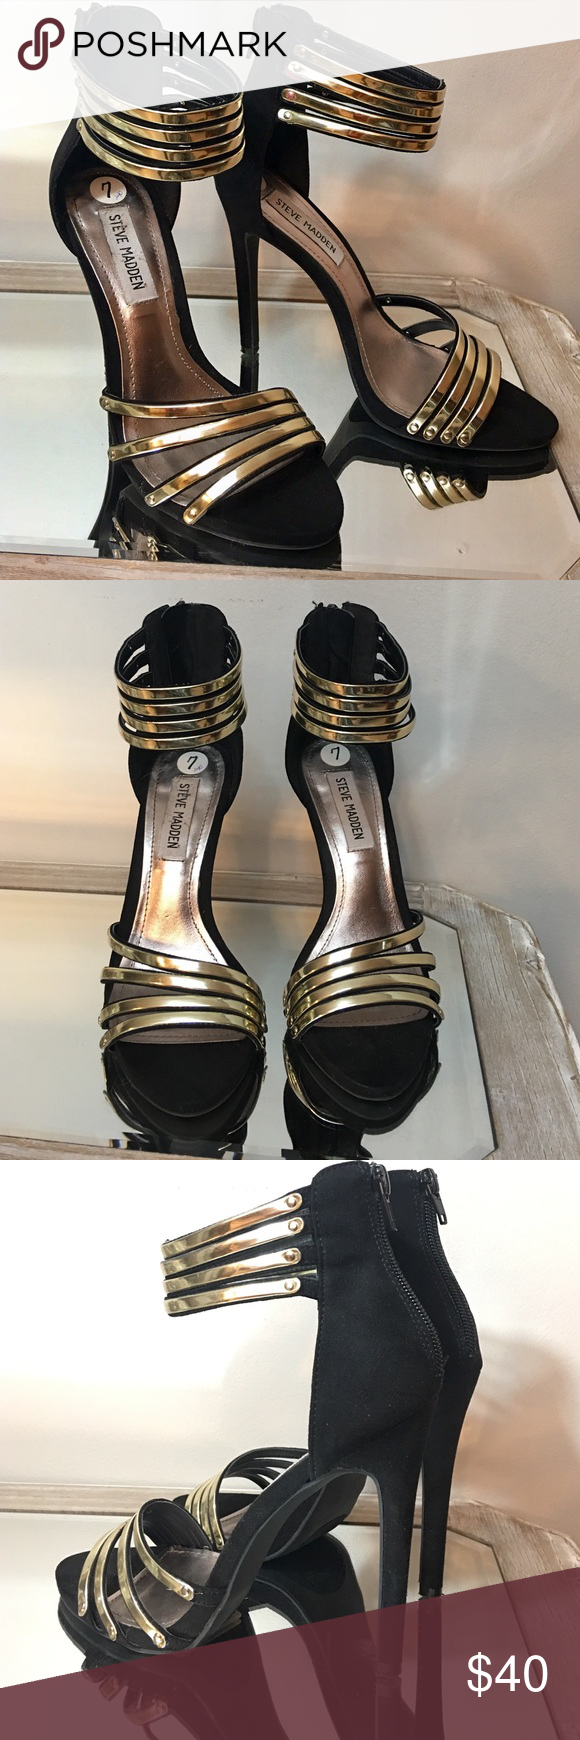 "Steve Madden Black & Gold Open Toe Sandal Heels Excellent condition! Steve Madden Black & Gold Open Toe Strappy Sandal 4.5"" Heels zips up back. 📌Price drop... along w $6 to help with shipping!!! Steve Madden Shoes Heels"